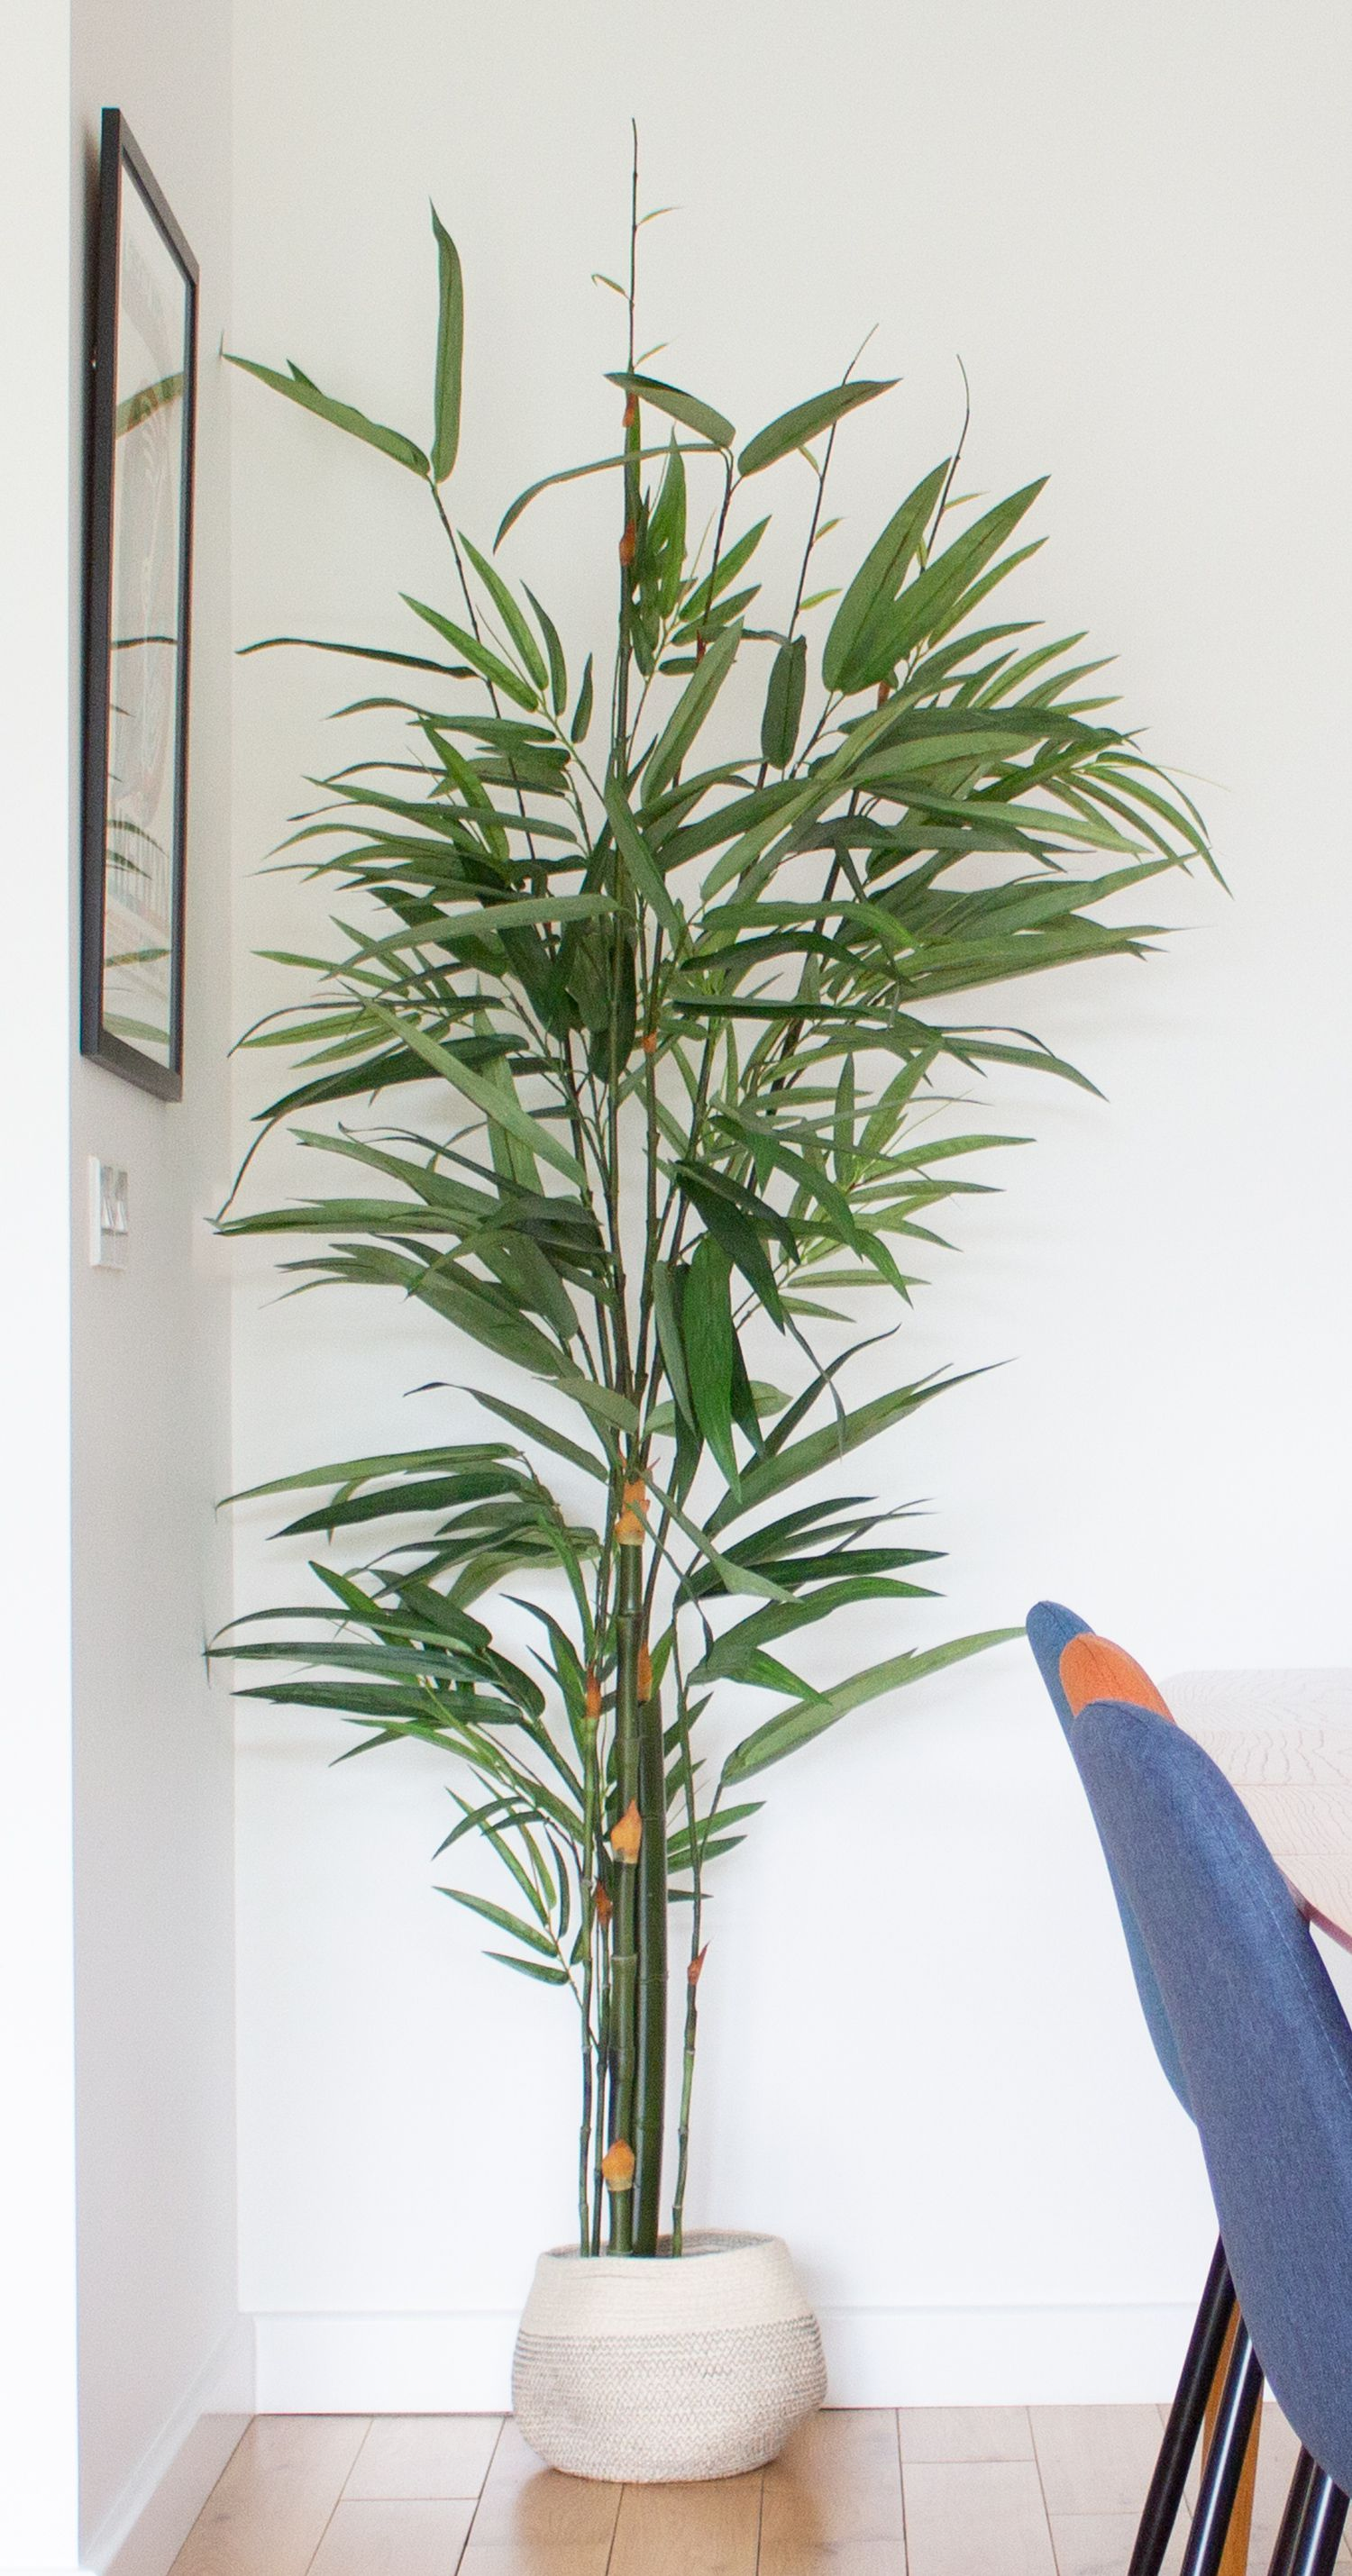 A photo of the tall plant in a rattan planter, next to the dining table.